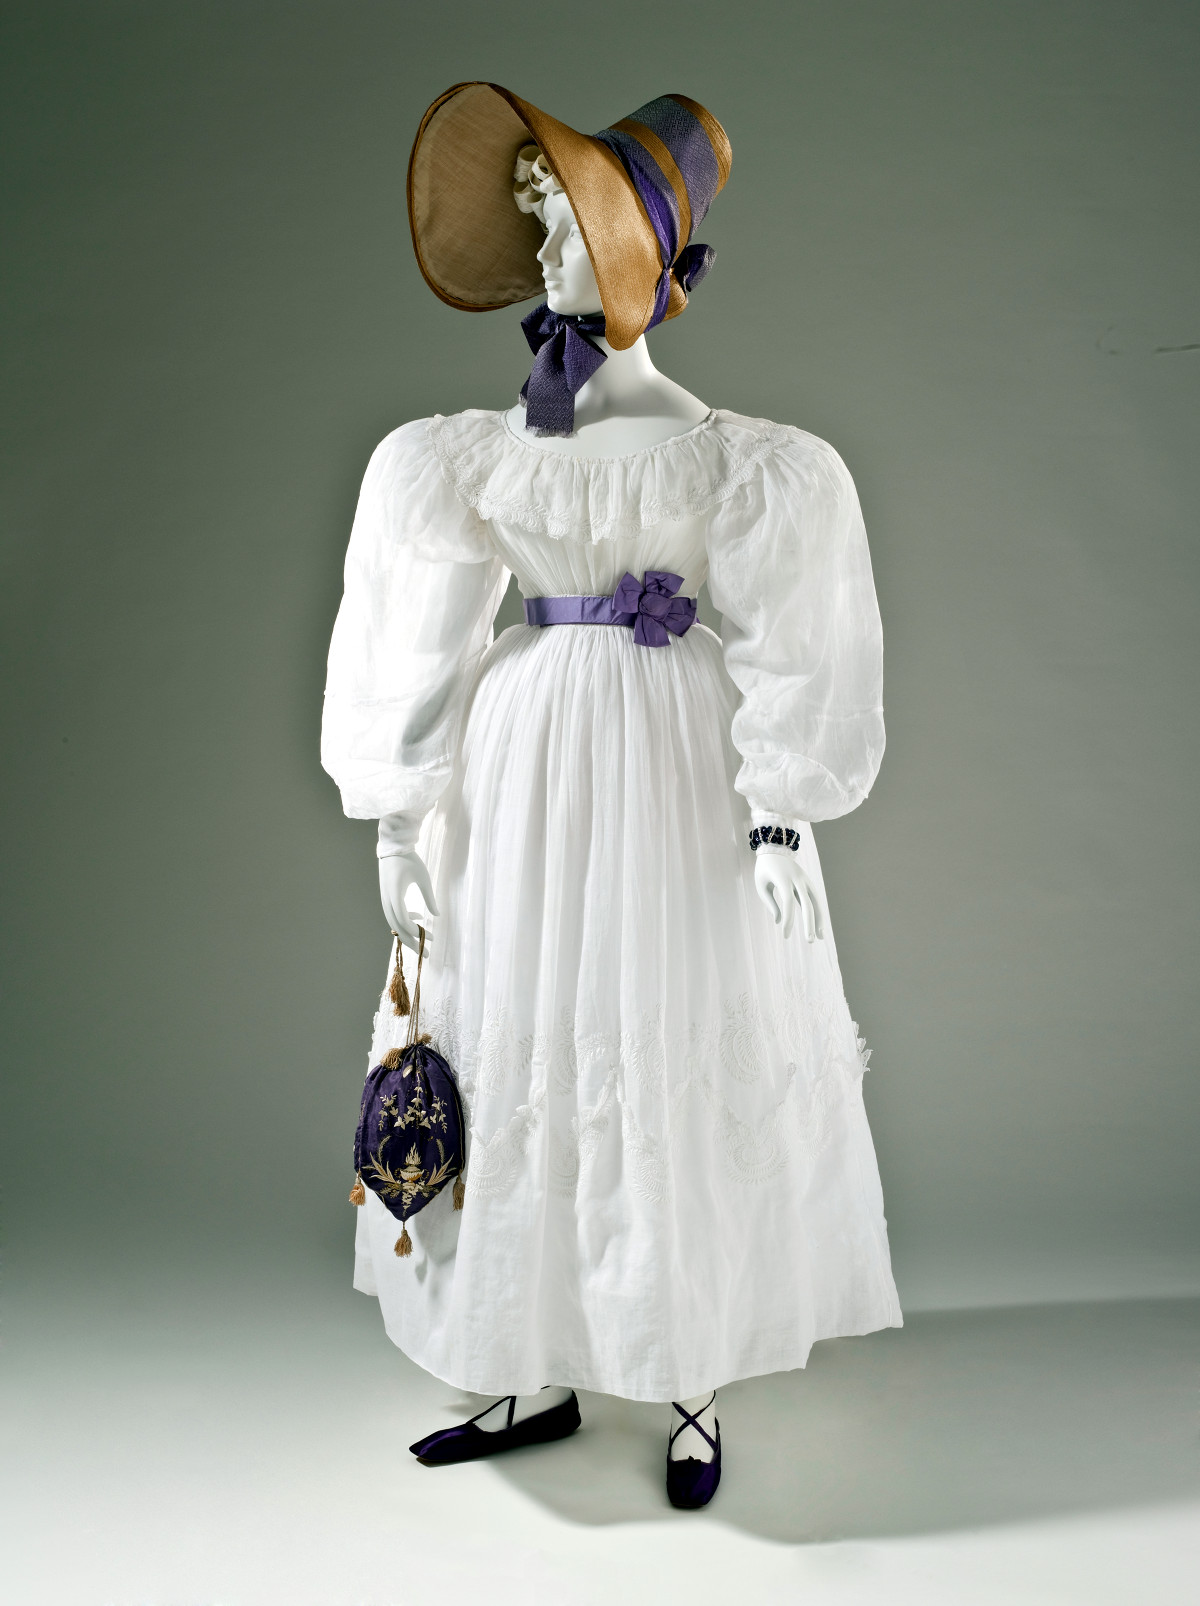 Lady from 1830 carry a French reticule handbag. LACMA